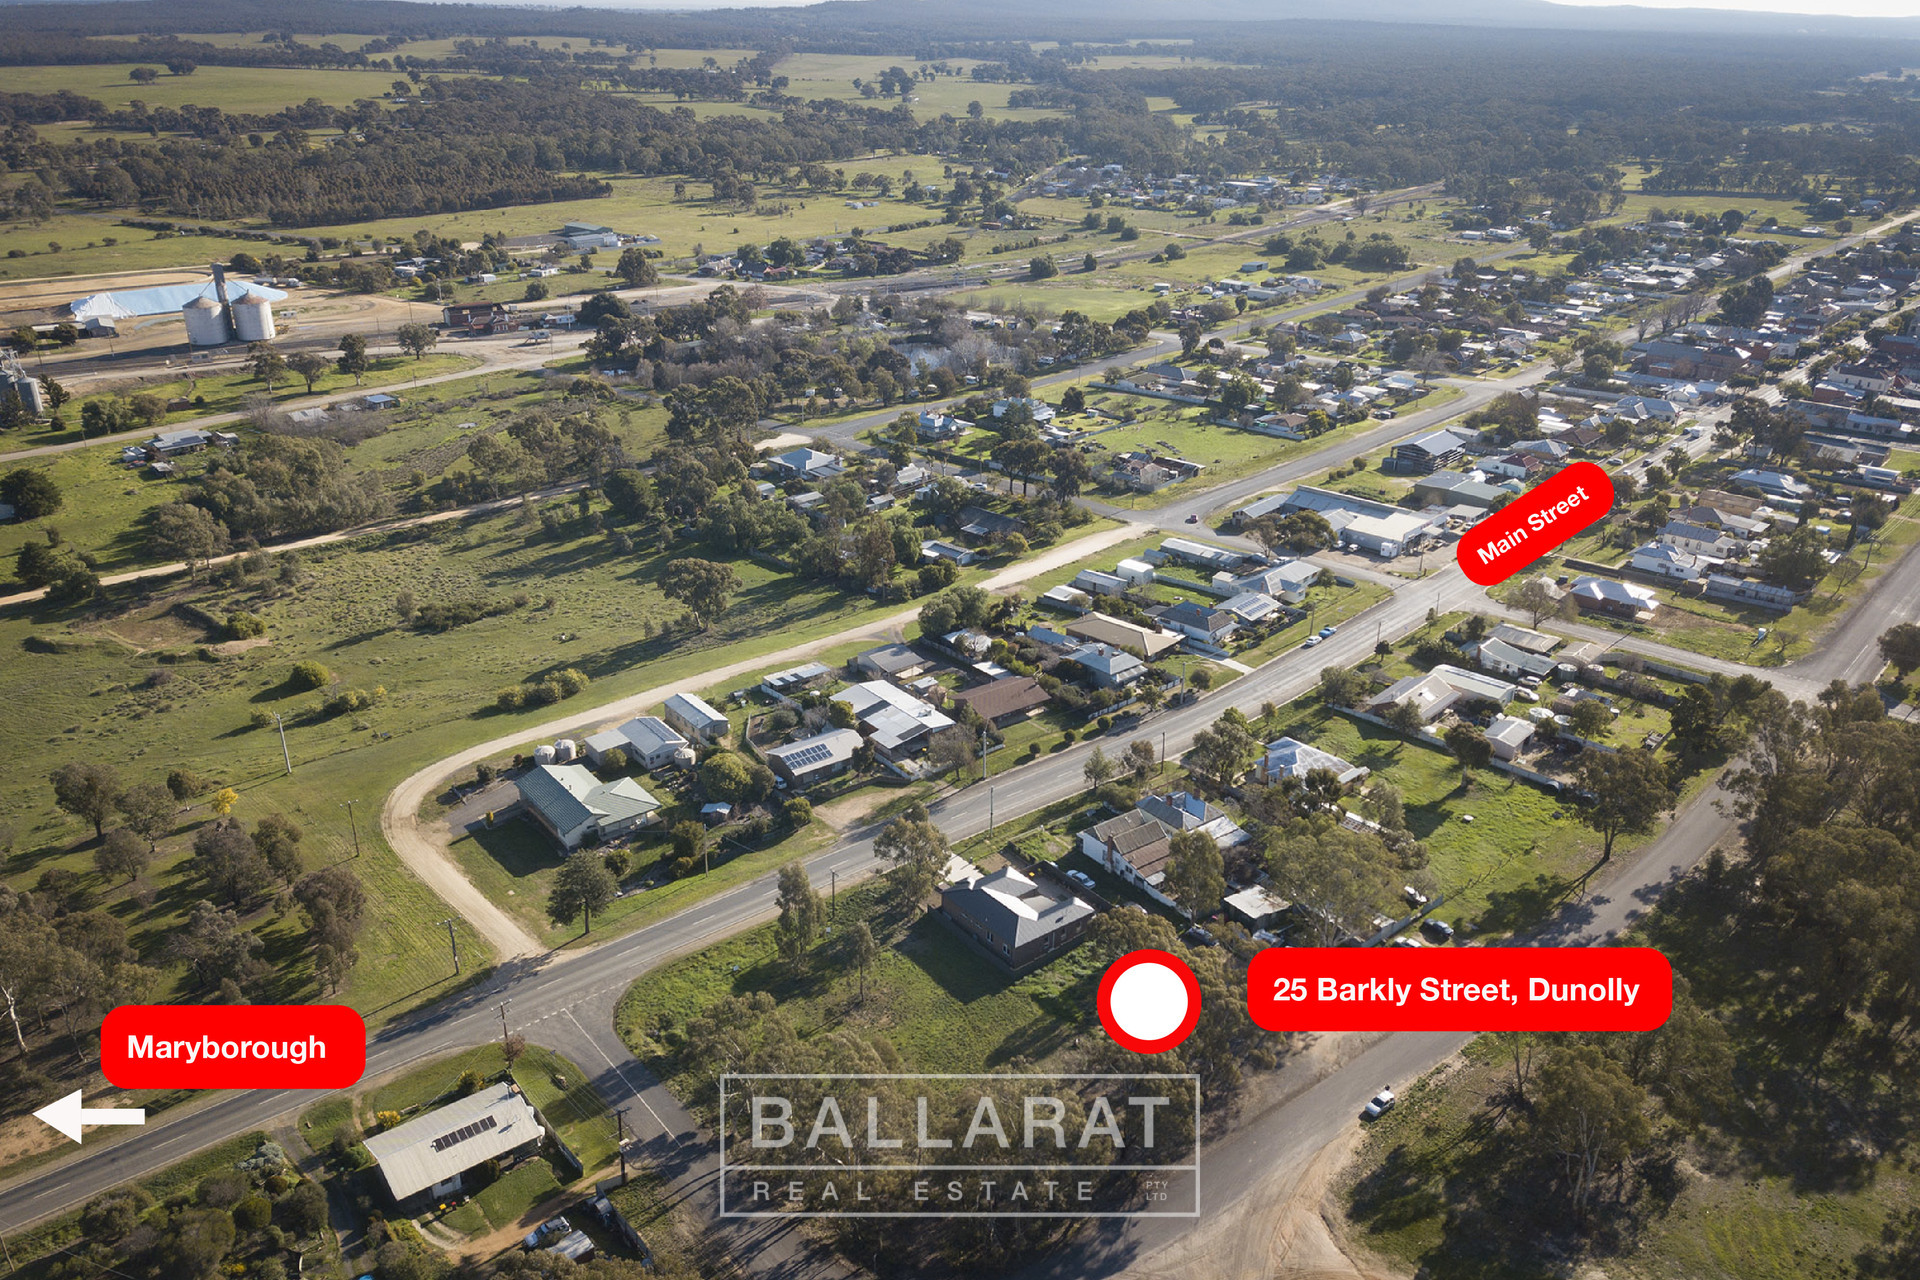 25 Barkly Street Dunolly